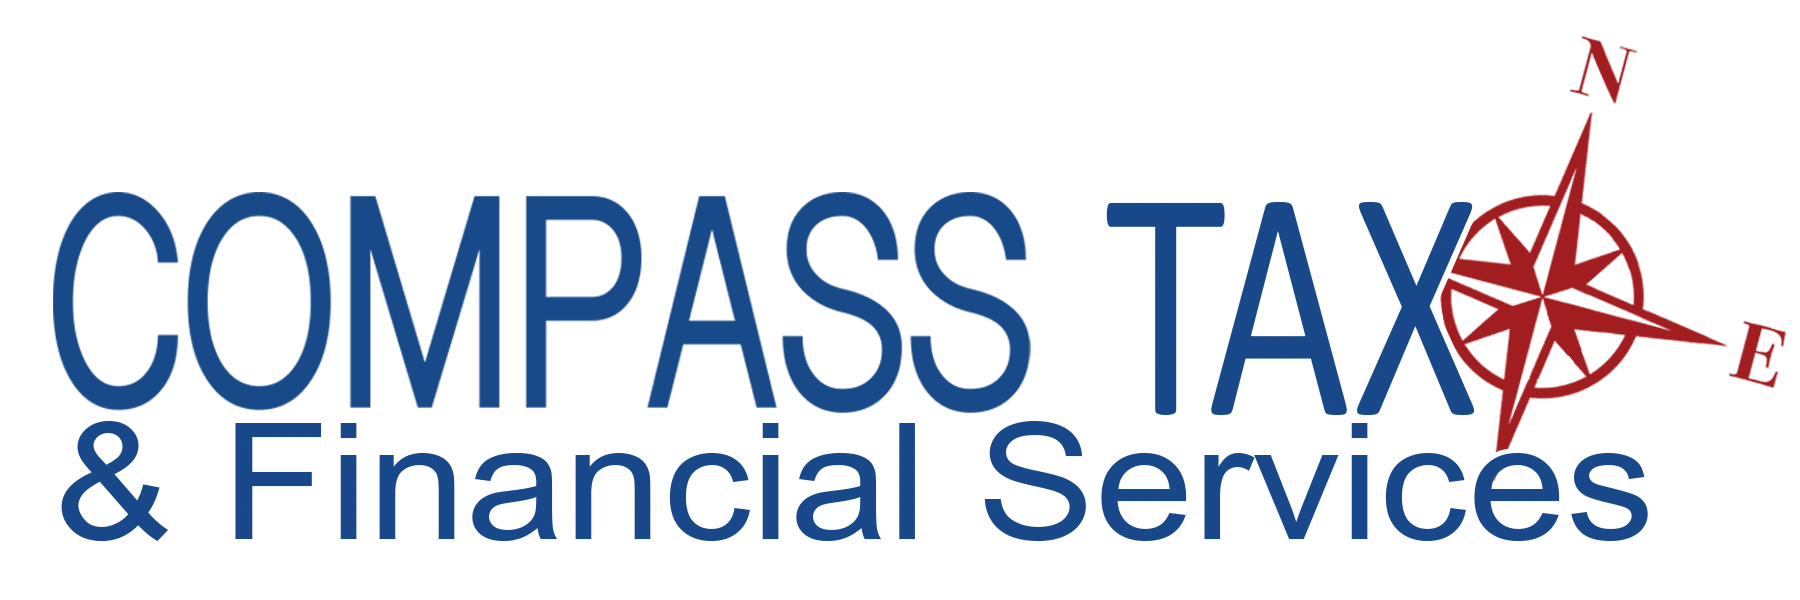 Compass Tax & Financial Services